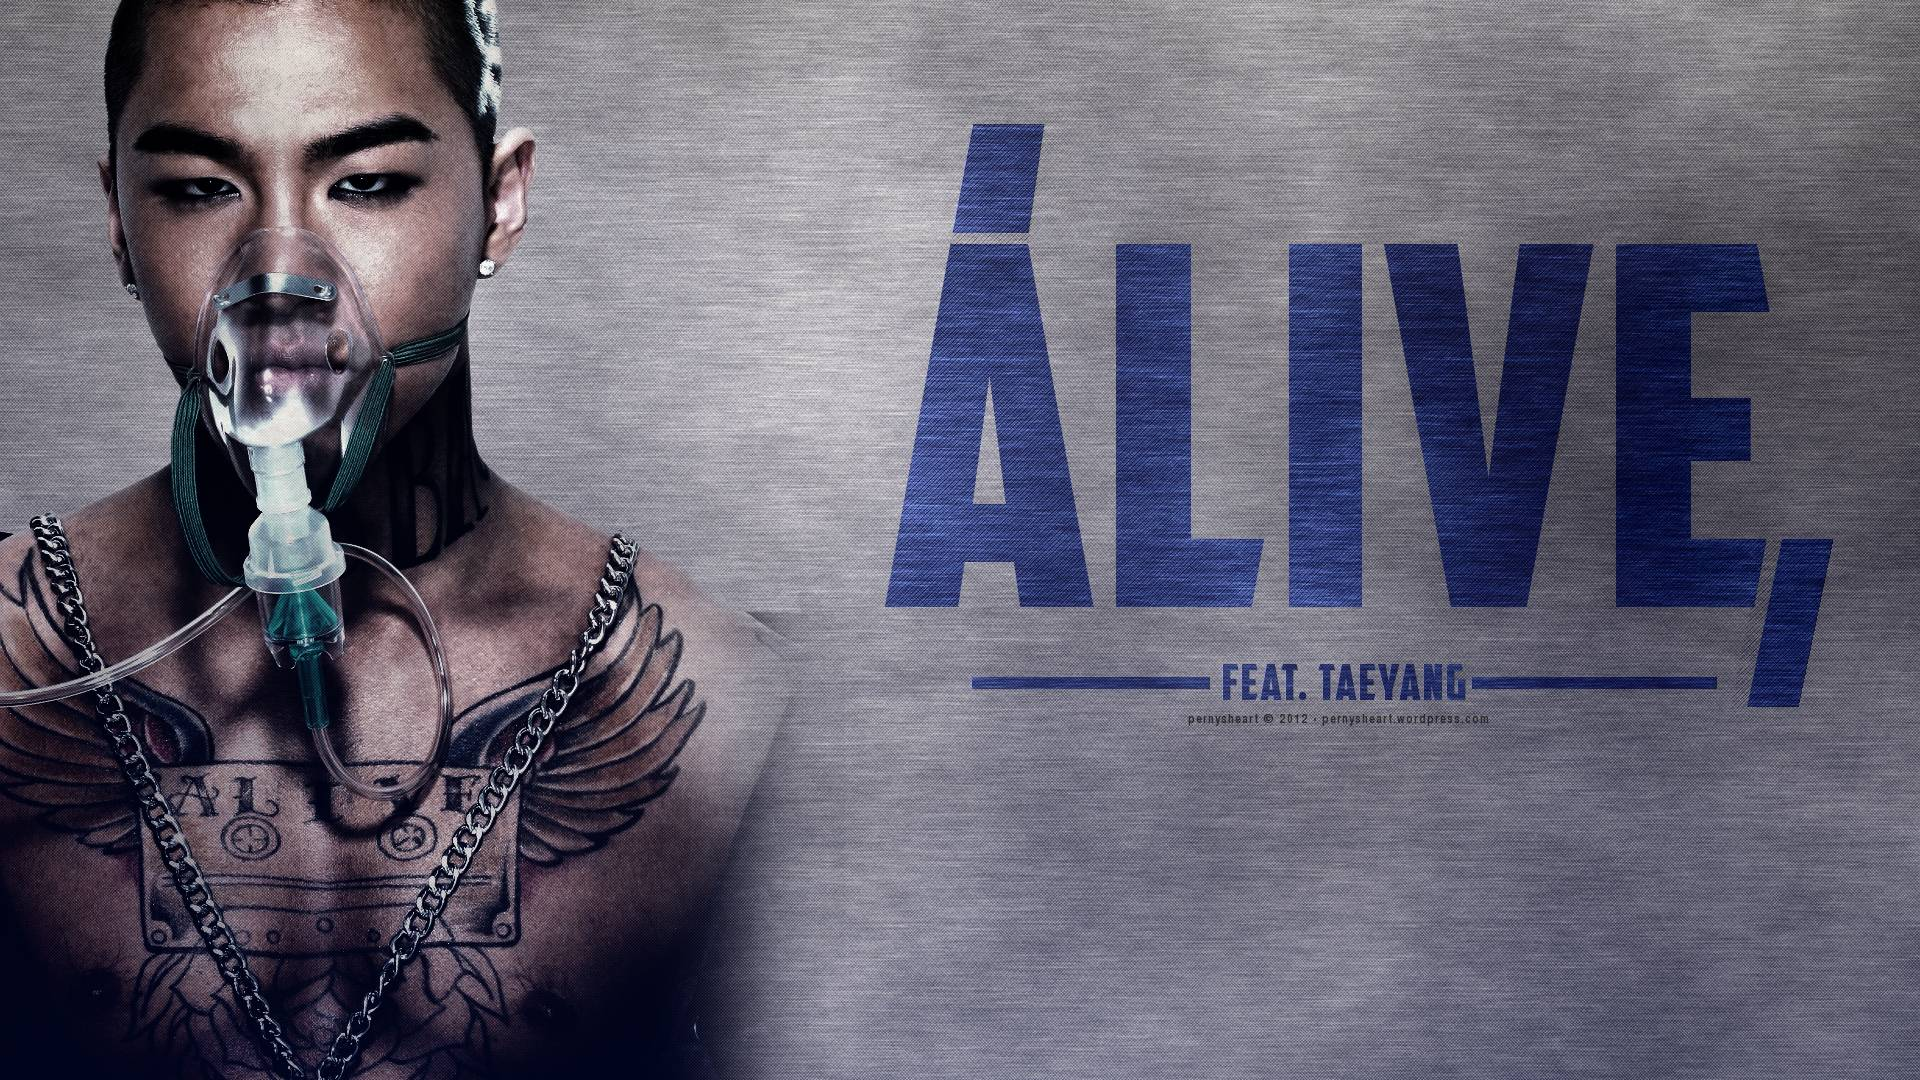 Alive ft Taeyang   Big Bang Wallpaper 1920x1080